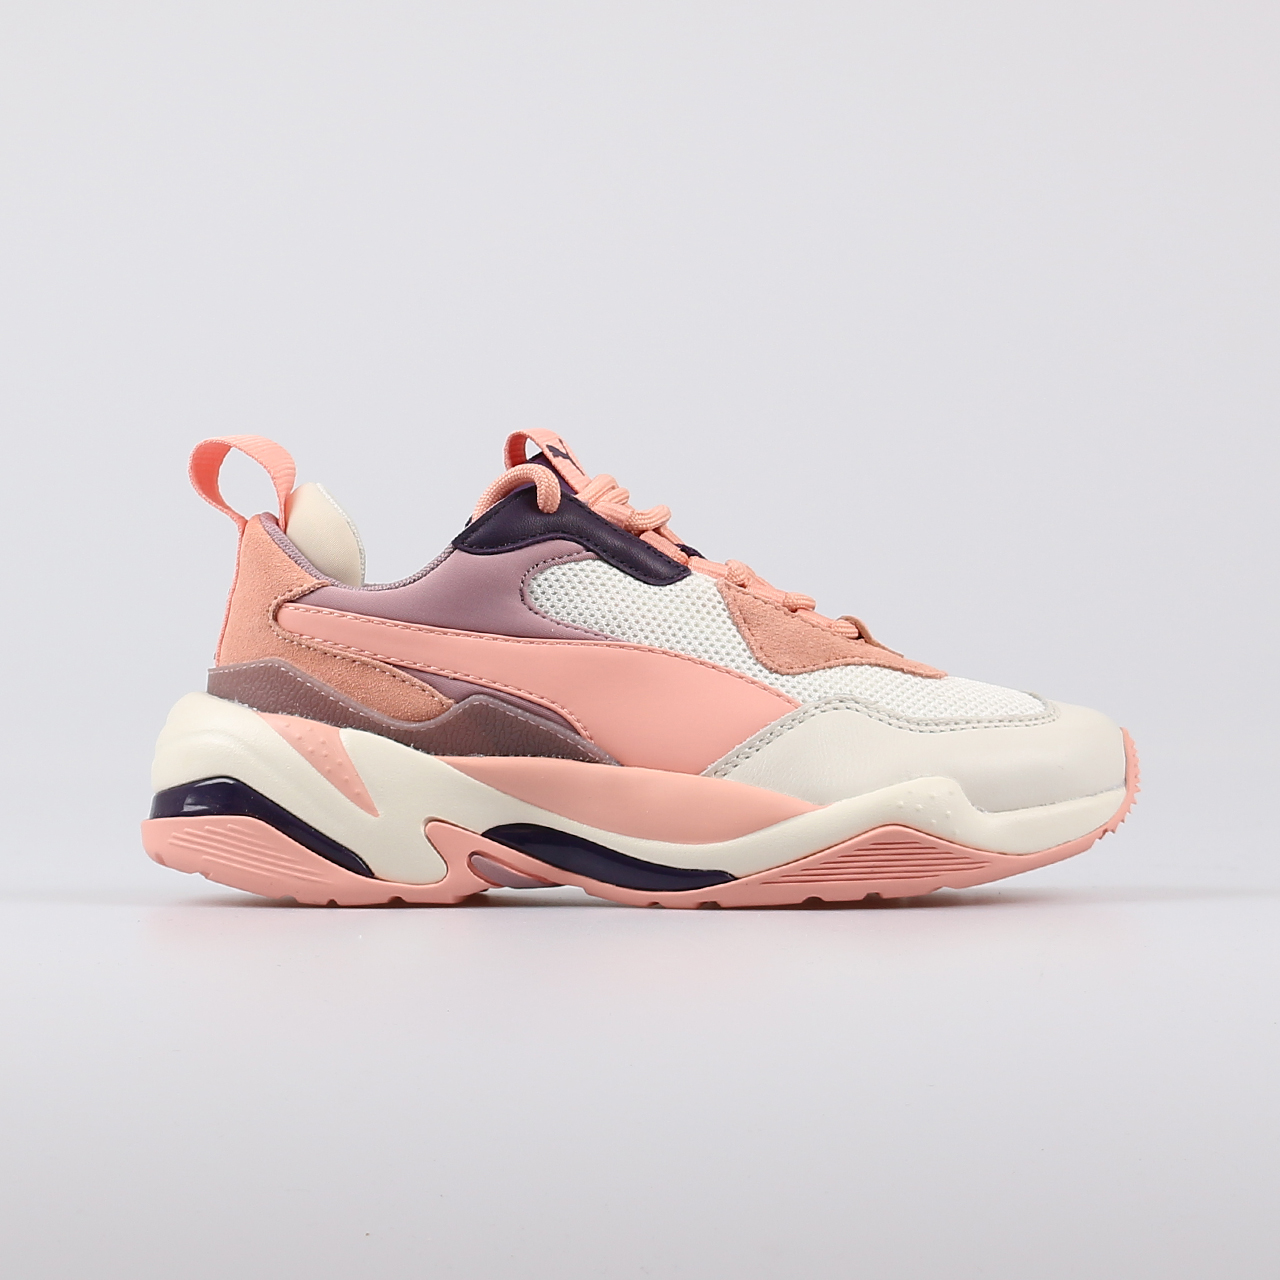 c0ef8ab8213 Home / New Arrivals / PUMA Thunder Spectra Sneakers Dames